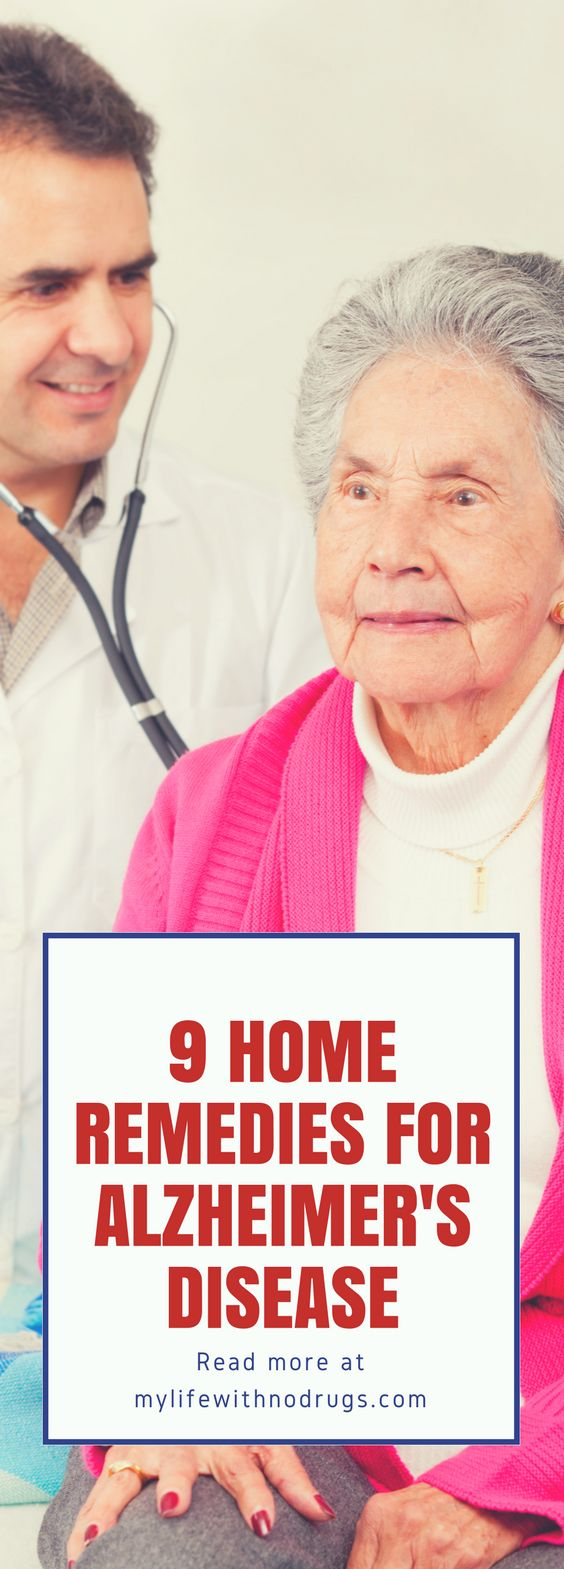 #Alzheimer'sdisease is a common type of #dementia or decline in intellectual function.Here are 9 #Homeremedies for #Alzheimer's disease that may help